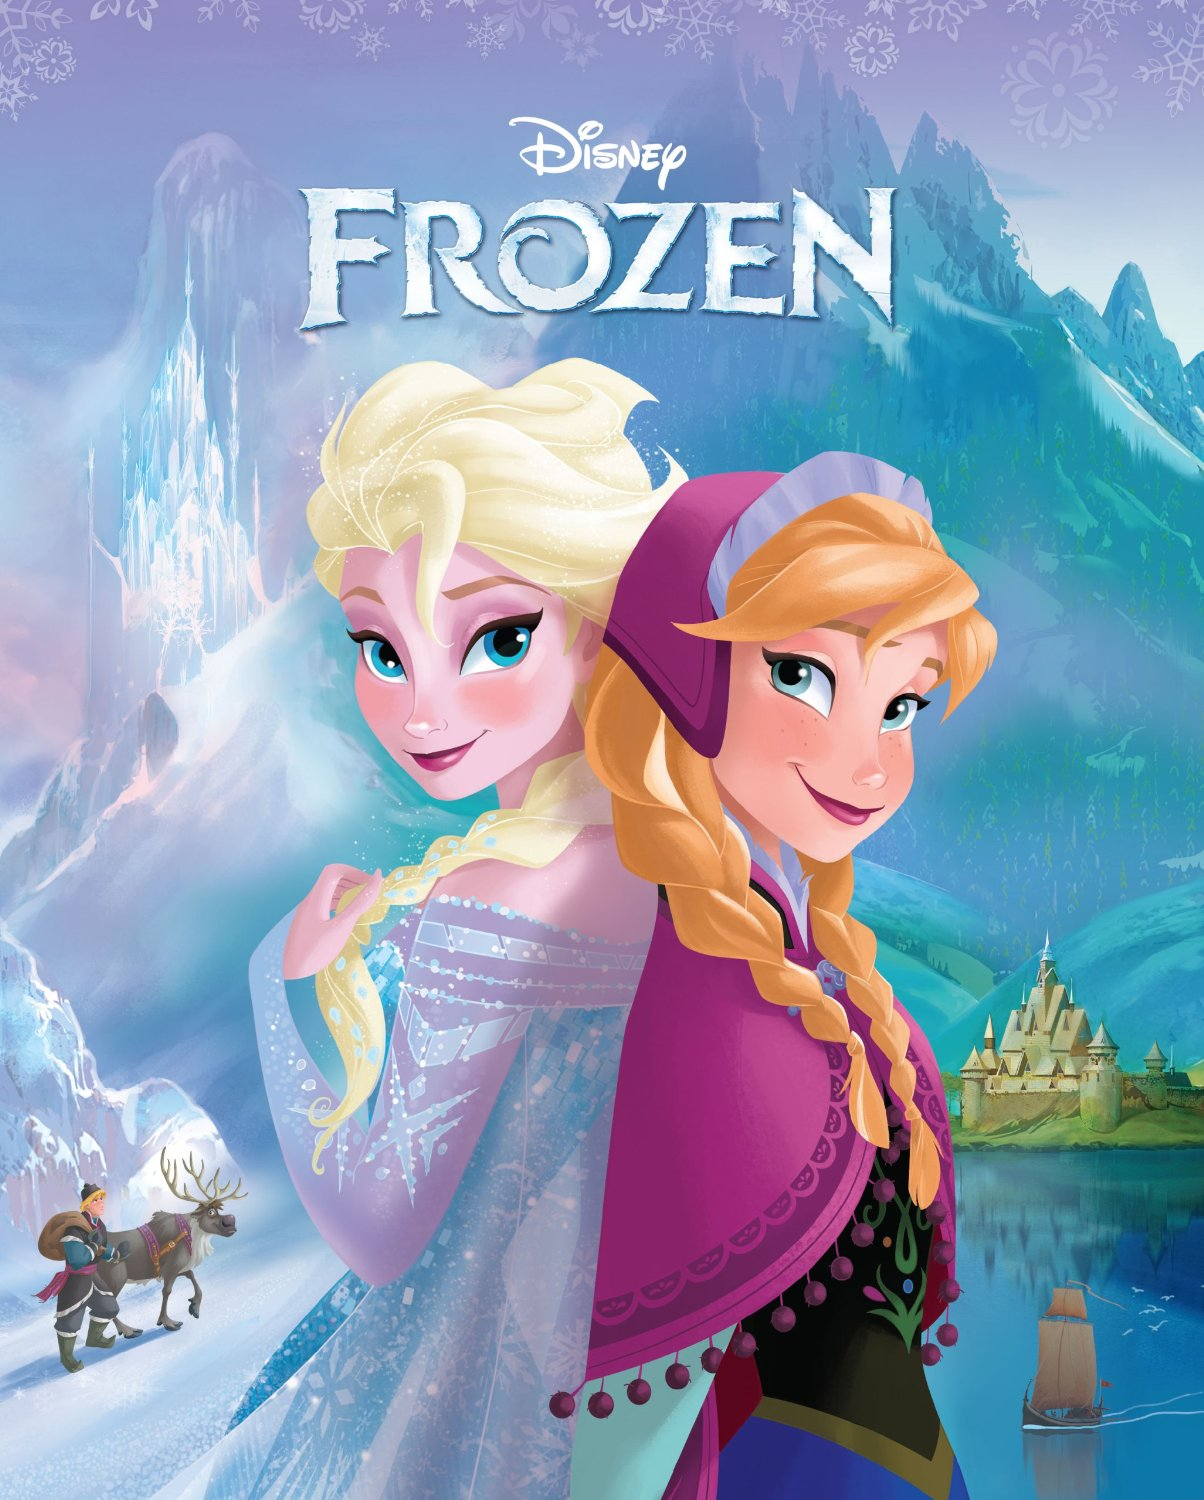 Elsa the Snow क्वीन from Book Cover